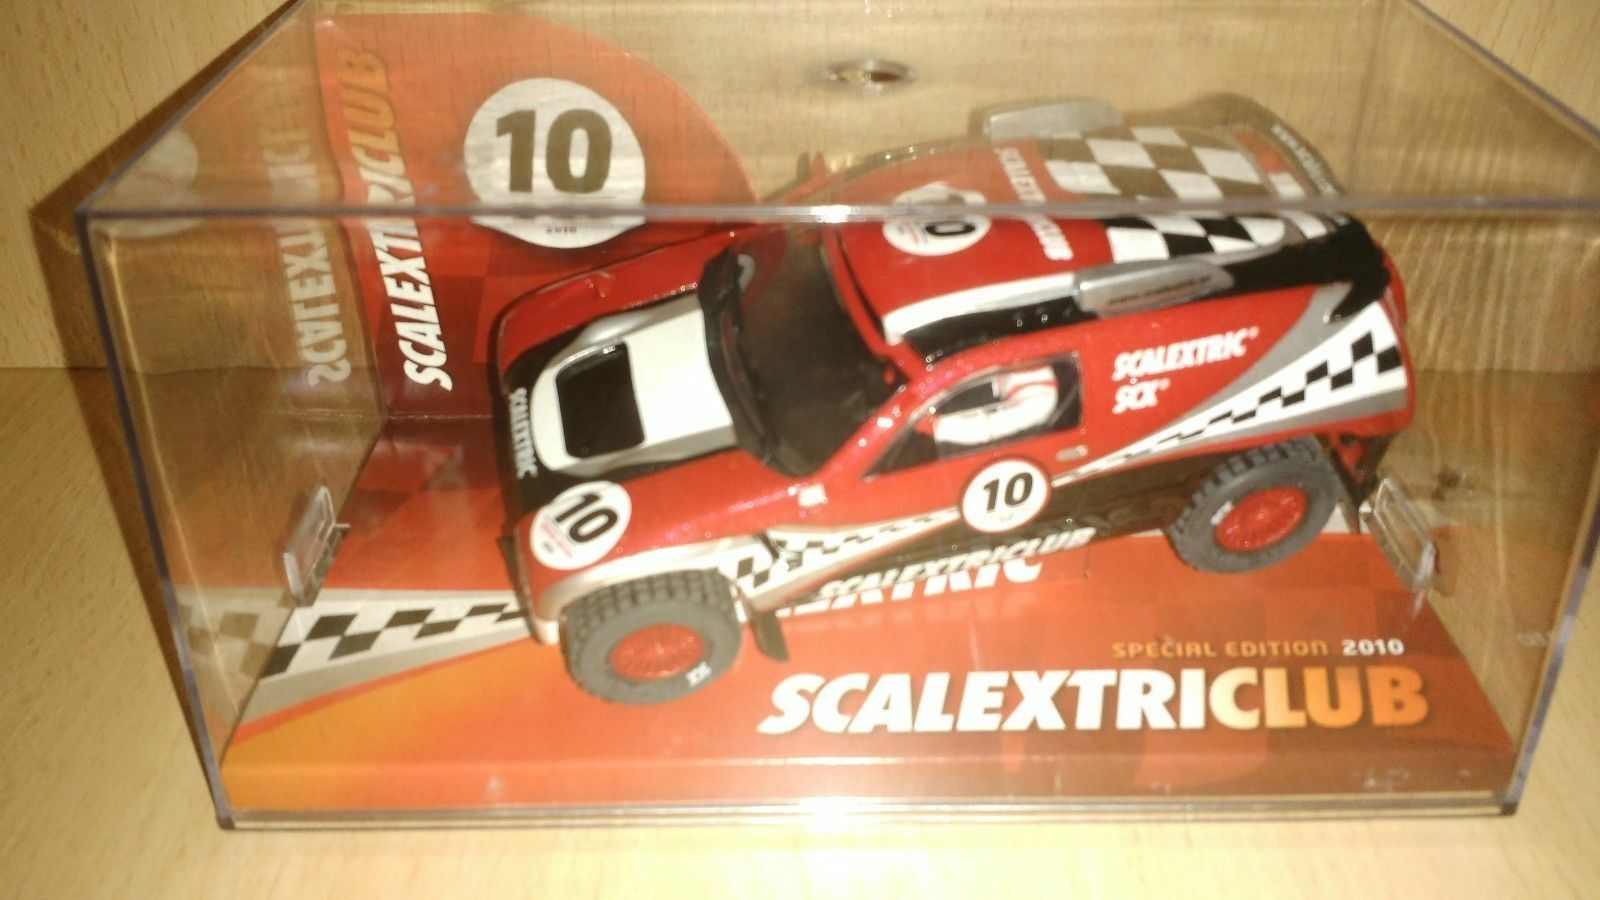 Scalextric Volswagen tuareg scalextric club 2010 limited edition